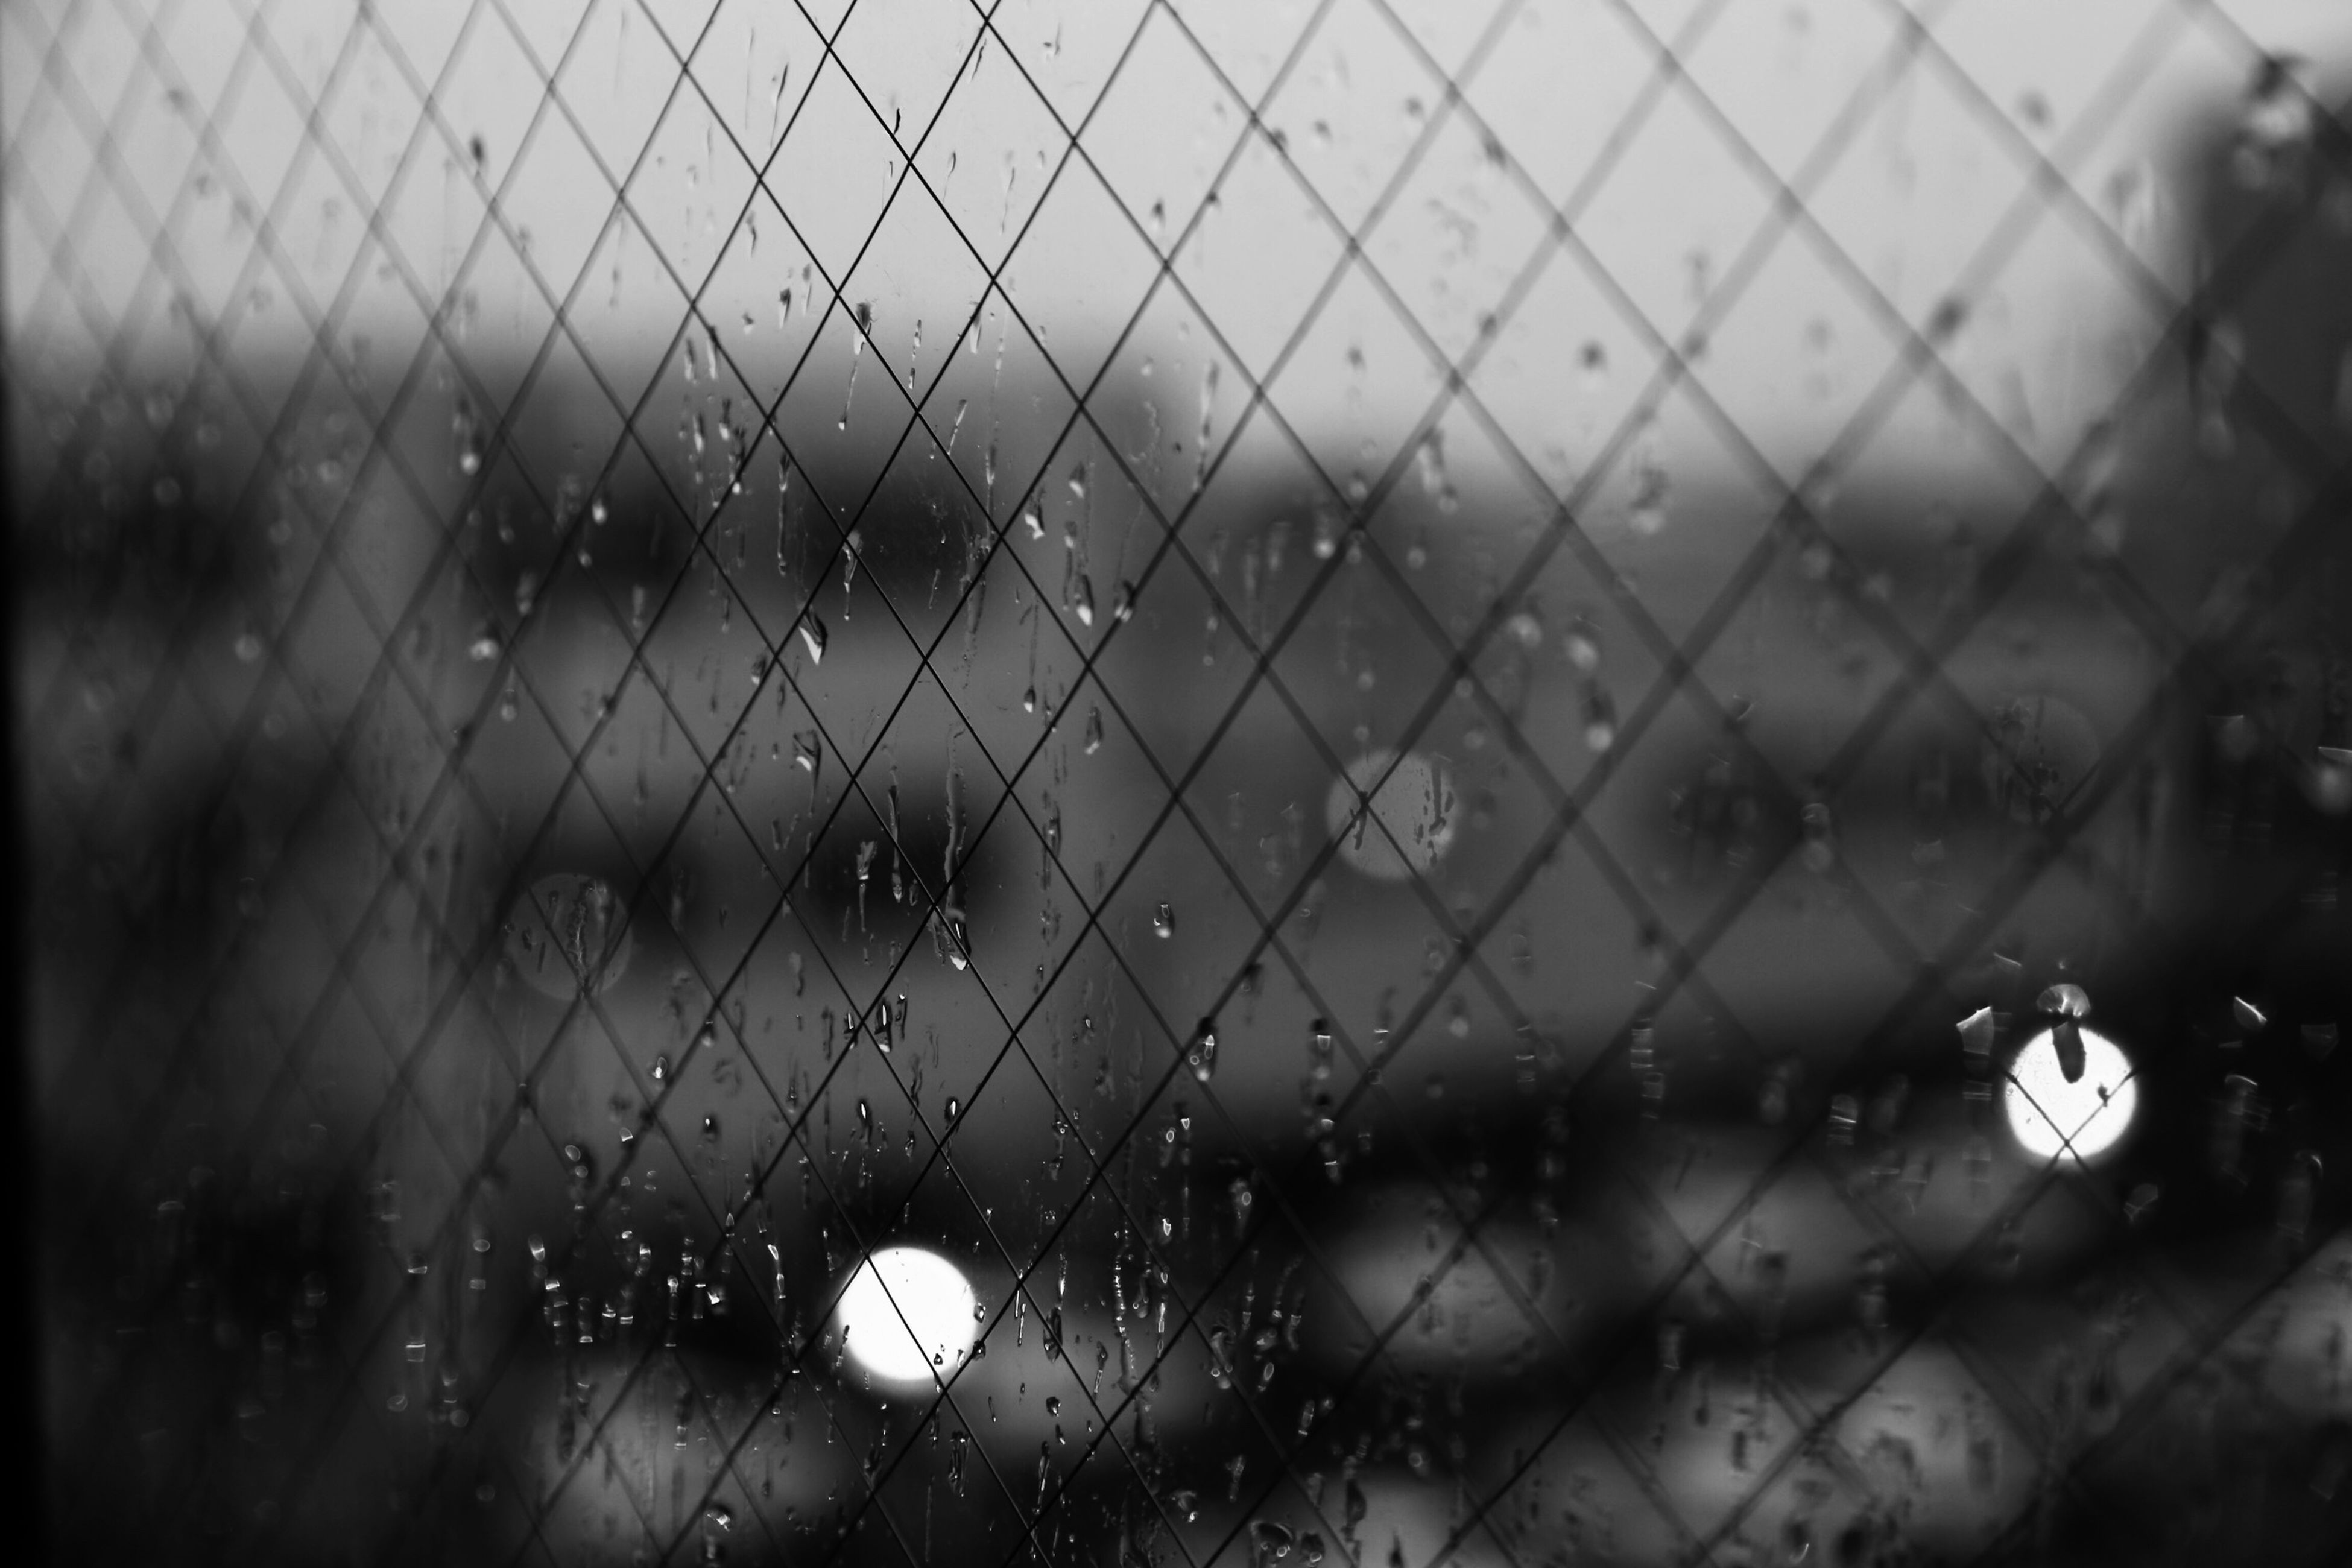 drop, full frame, chainlink fence, wet, focus on foreground, backgrounds, fence, rain, protection, safety, window, water, close-up, glass - material, pattern, security, raindrop, metal, indoors, transparent